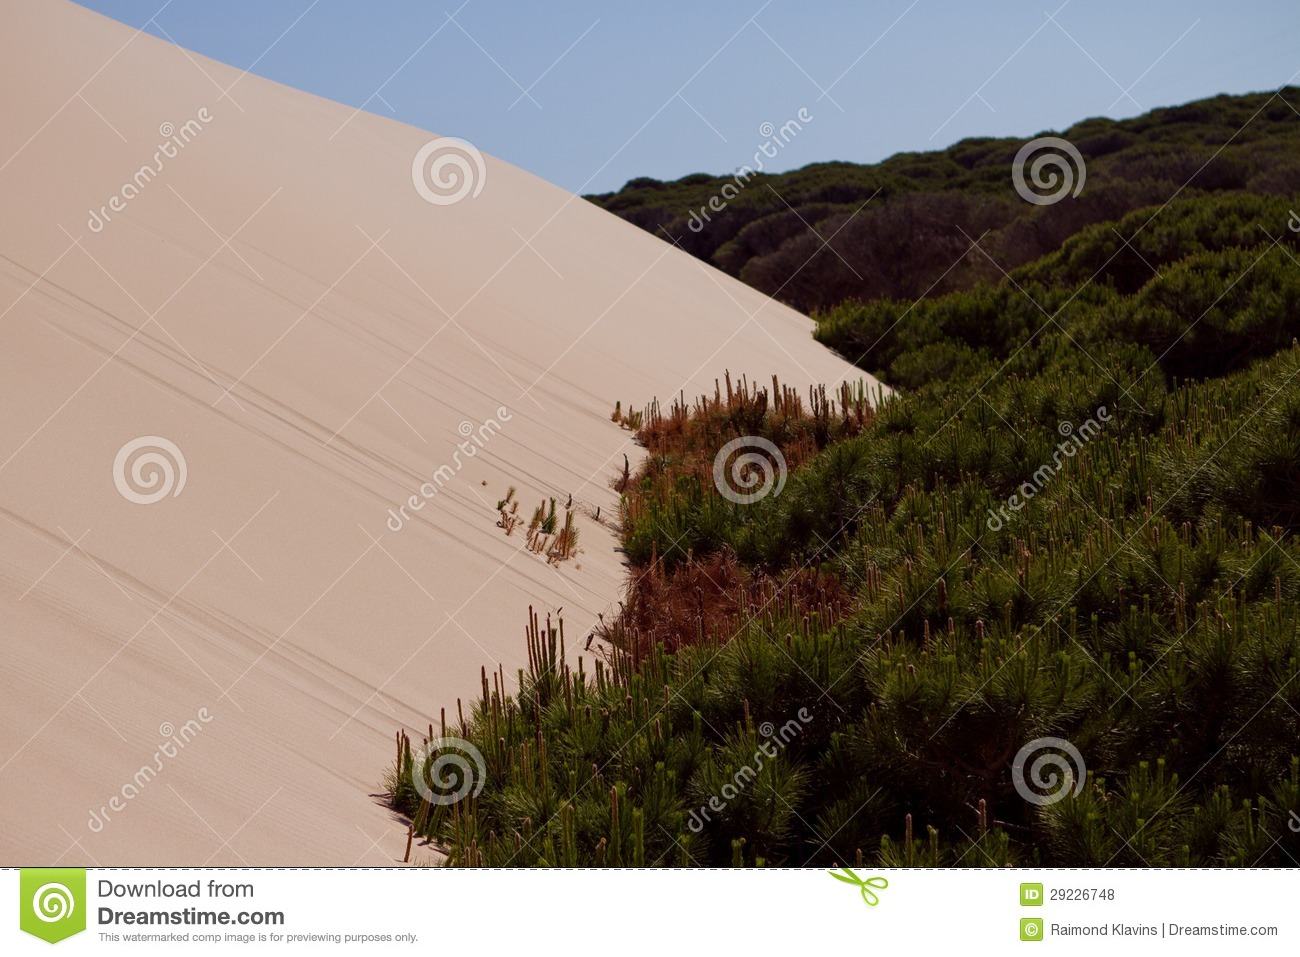 Sand dune and trees